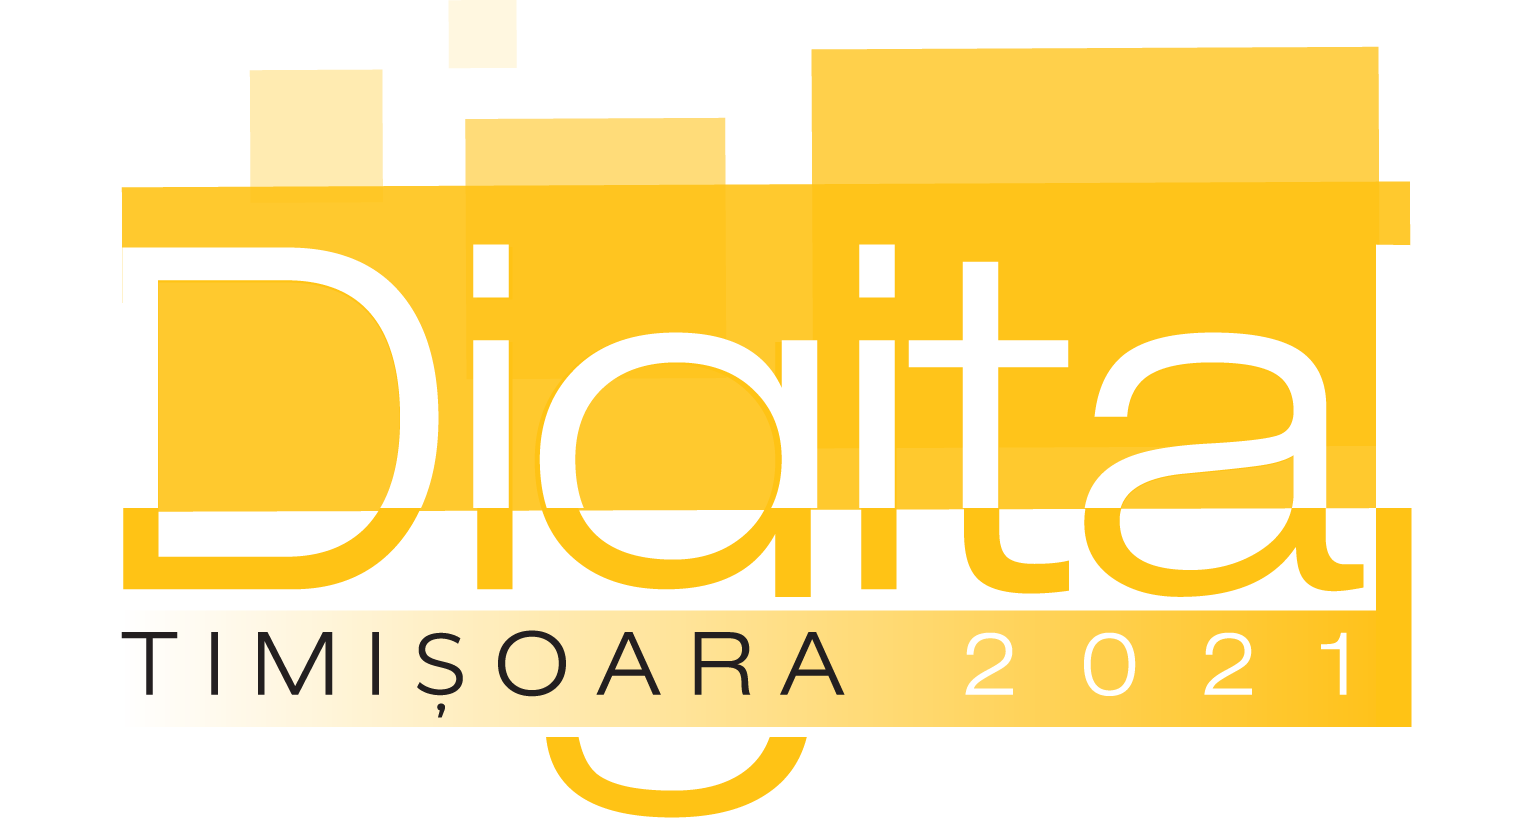 DigitalTimisoara